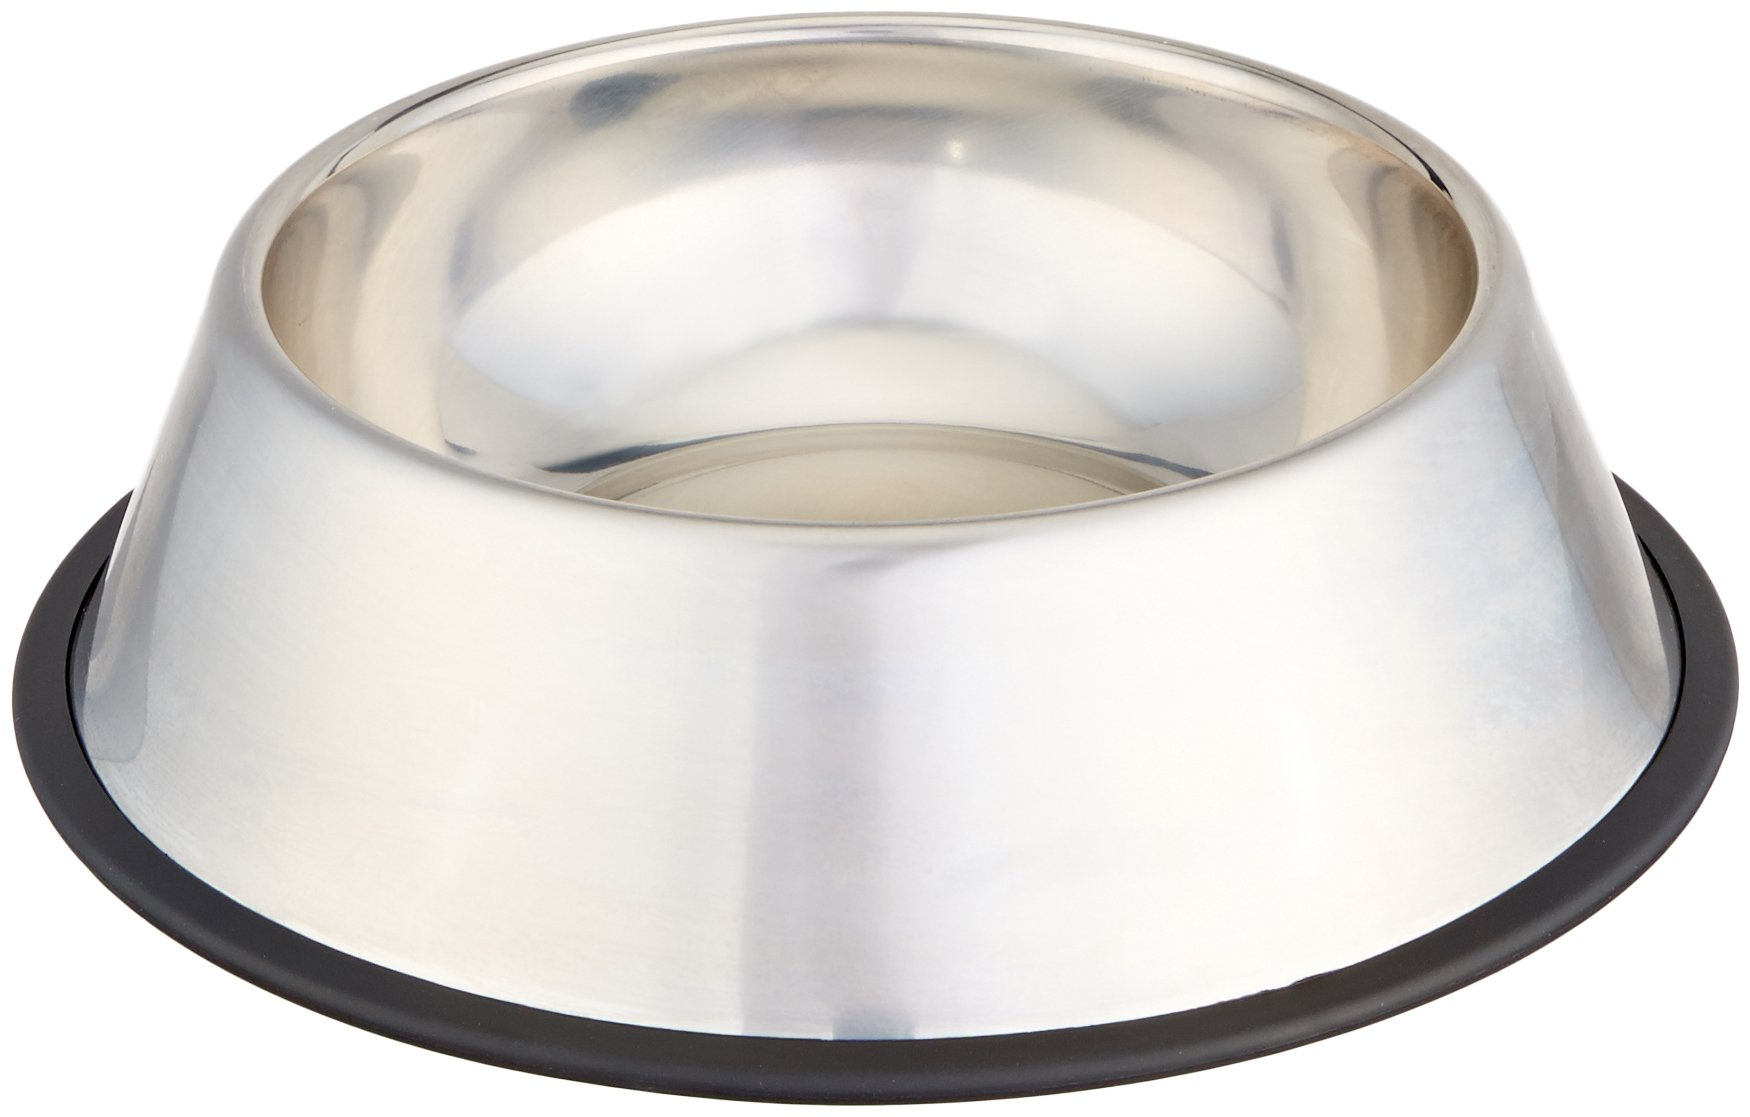 AmazonBasics Stainless Steel Pet Dog Water And Food Bowl, Single Pack (11 x 3 Inches)